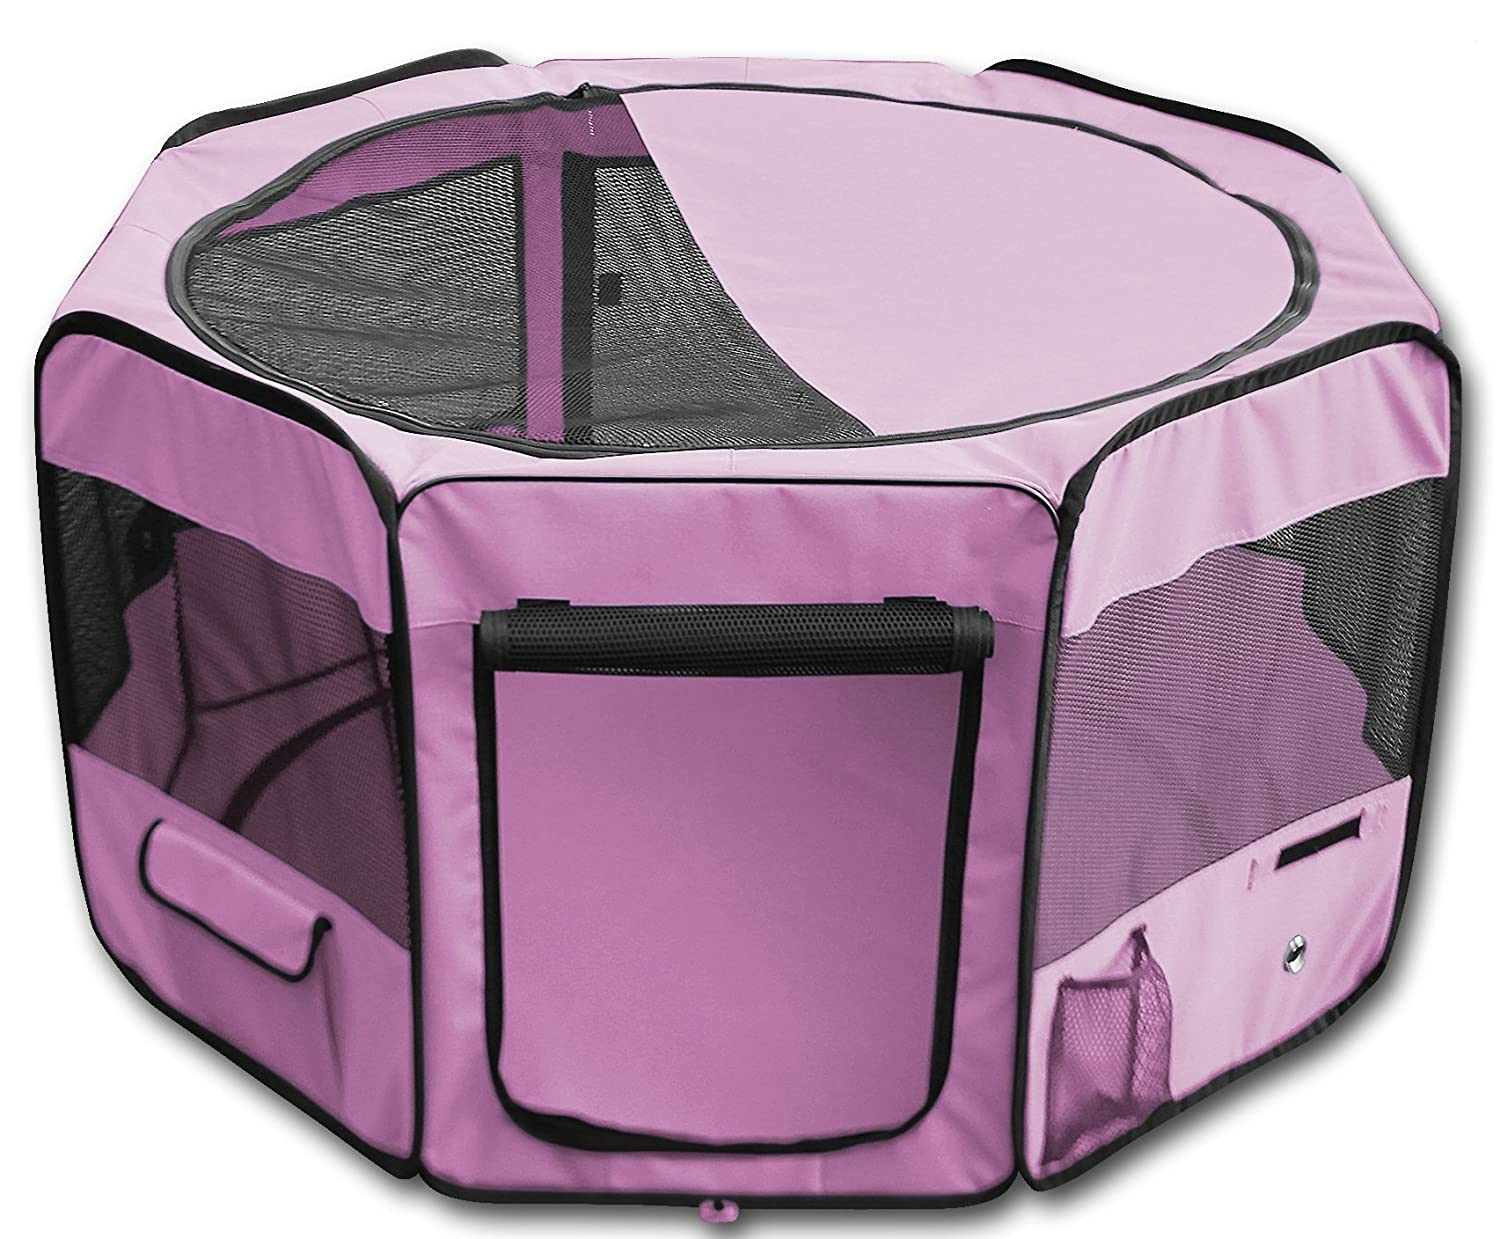 YoYo Moon 45 Pet Puppy Dog Playpen Exercise Puppy Pen Kennel 600d Oxford Cloth Pink